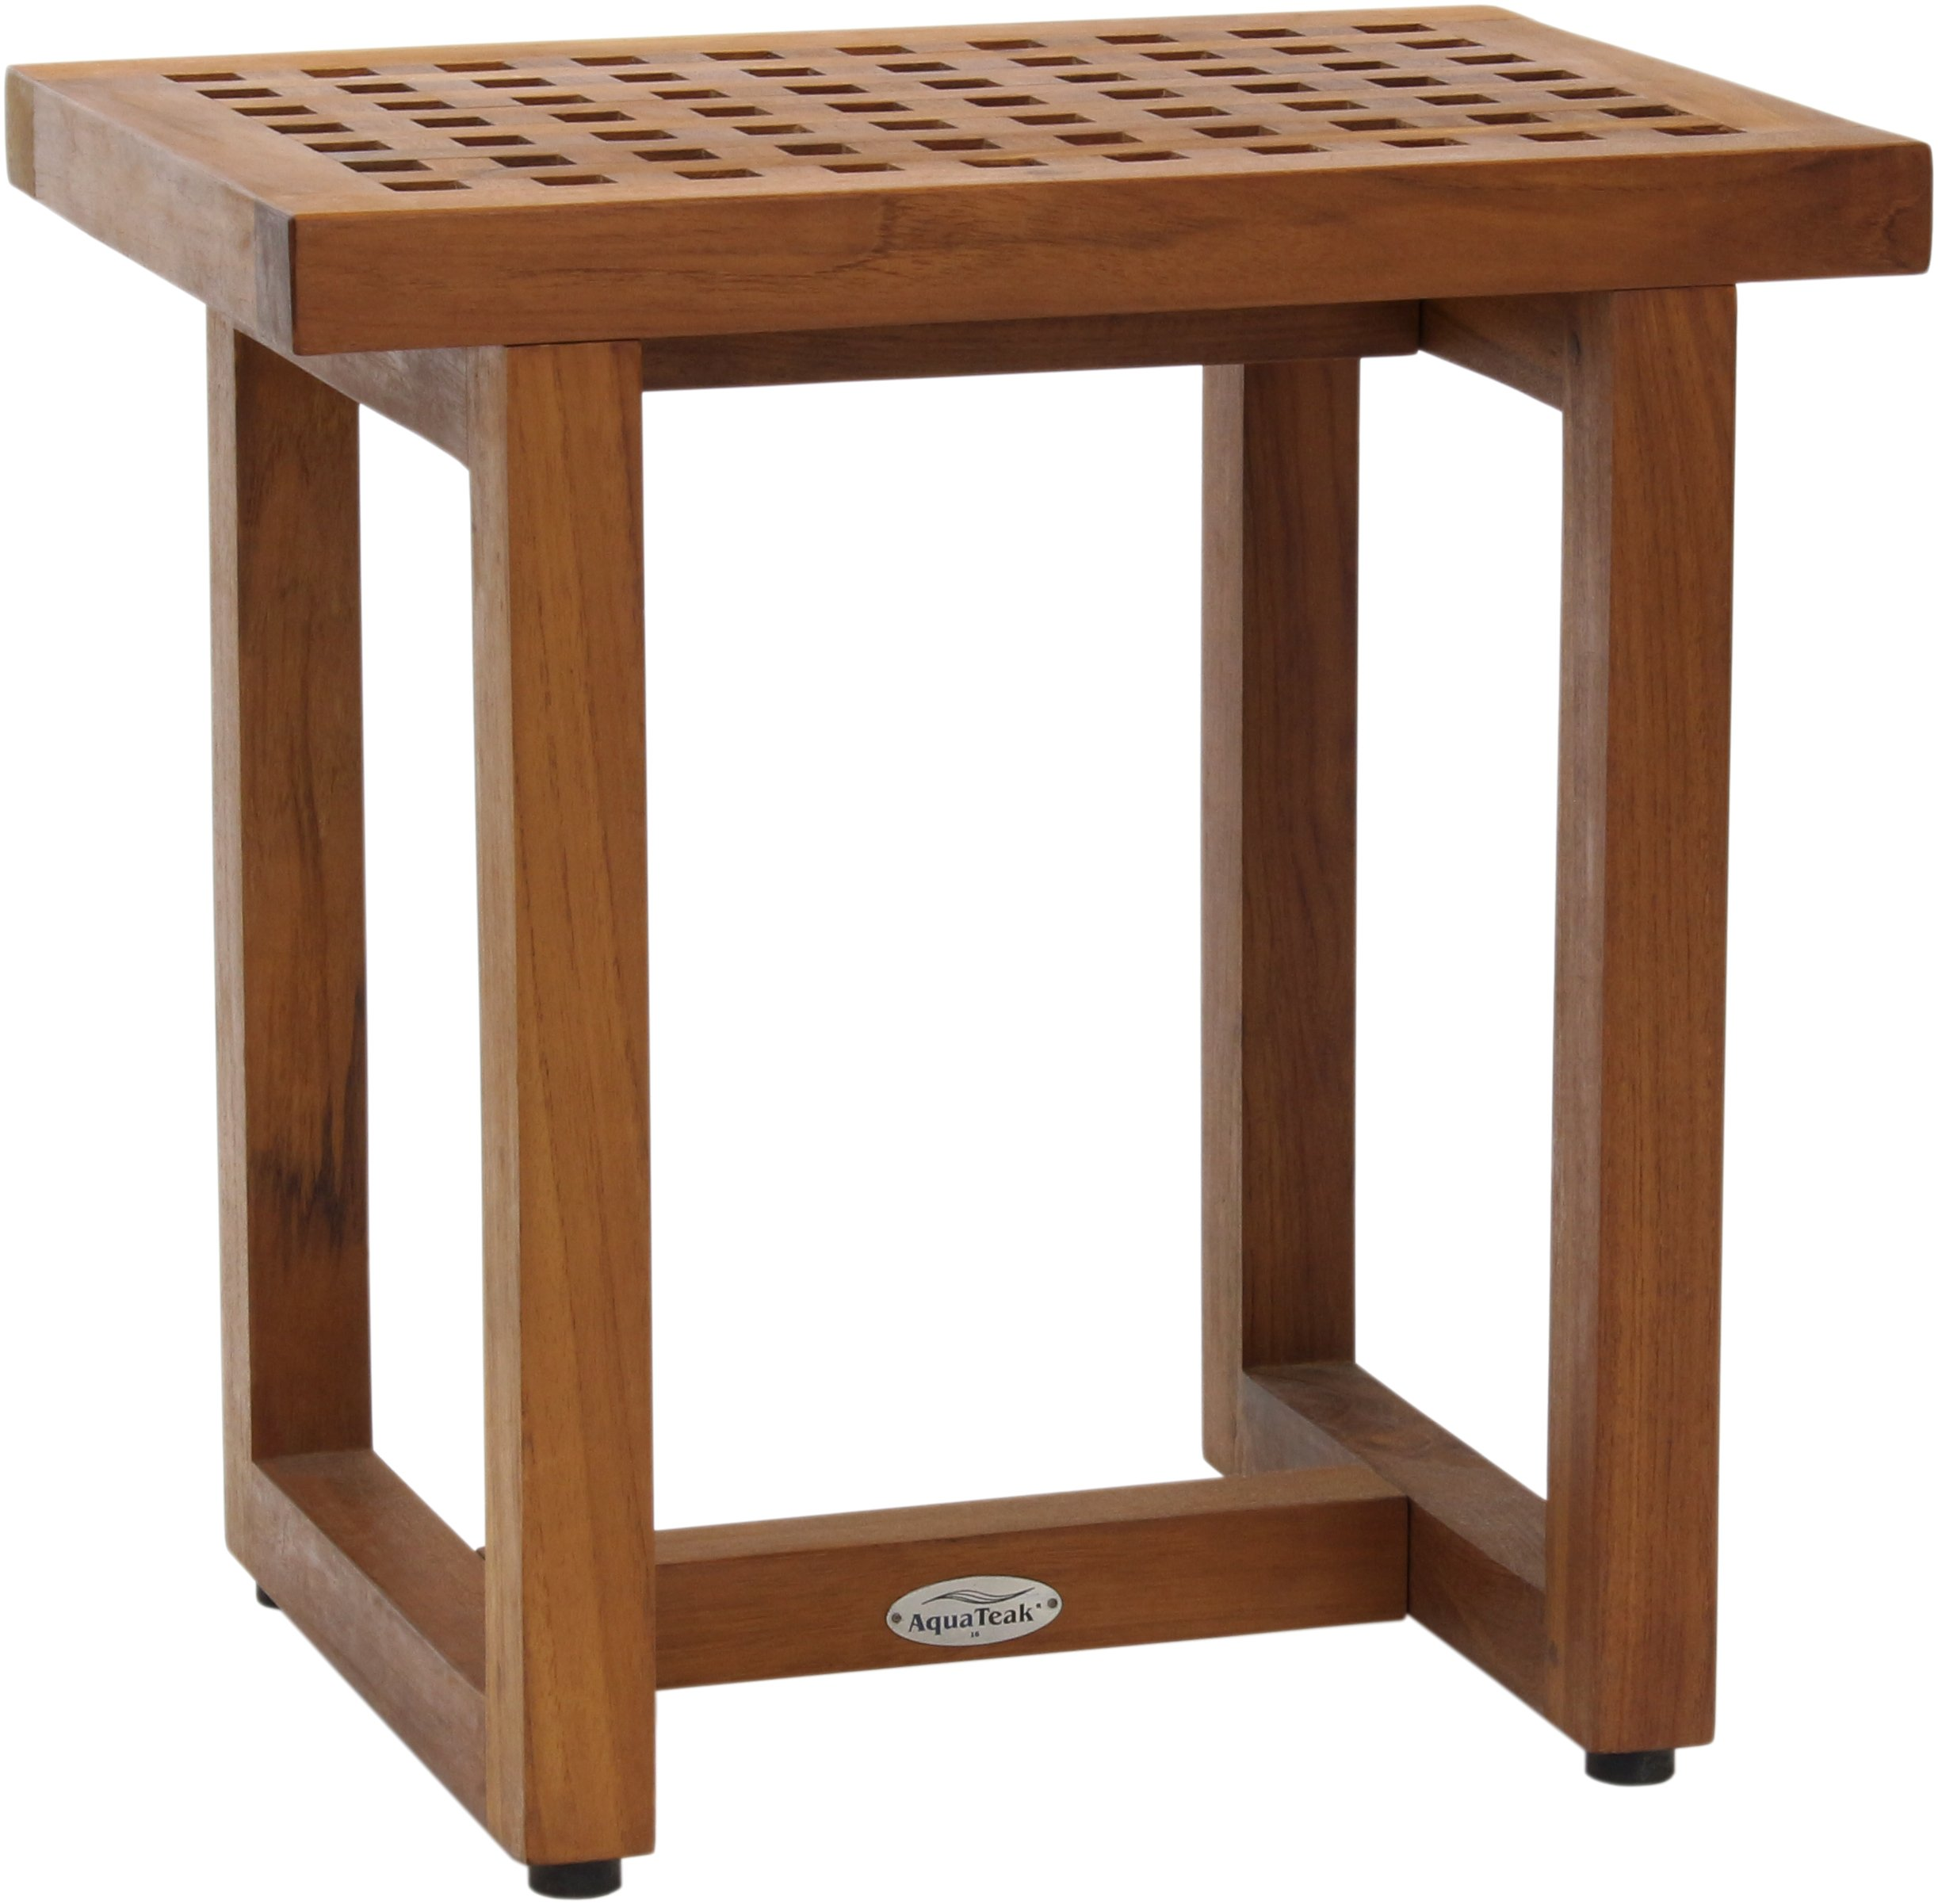 The Original Grate 18'' Teak Shower Bench